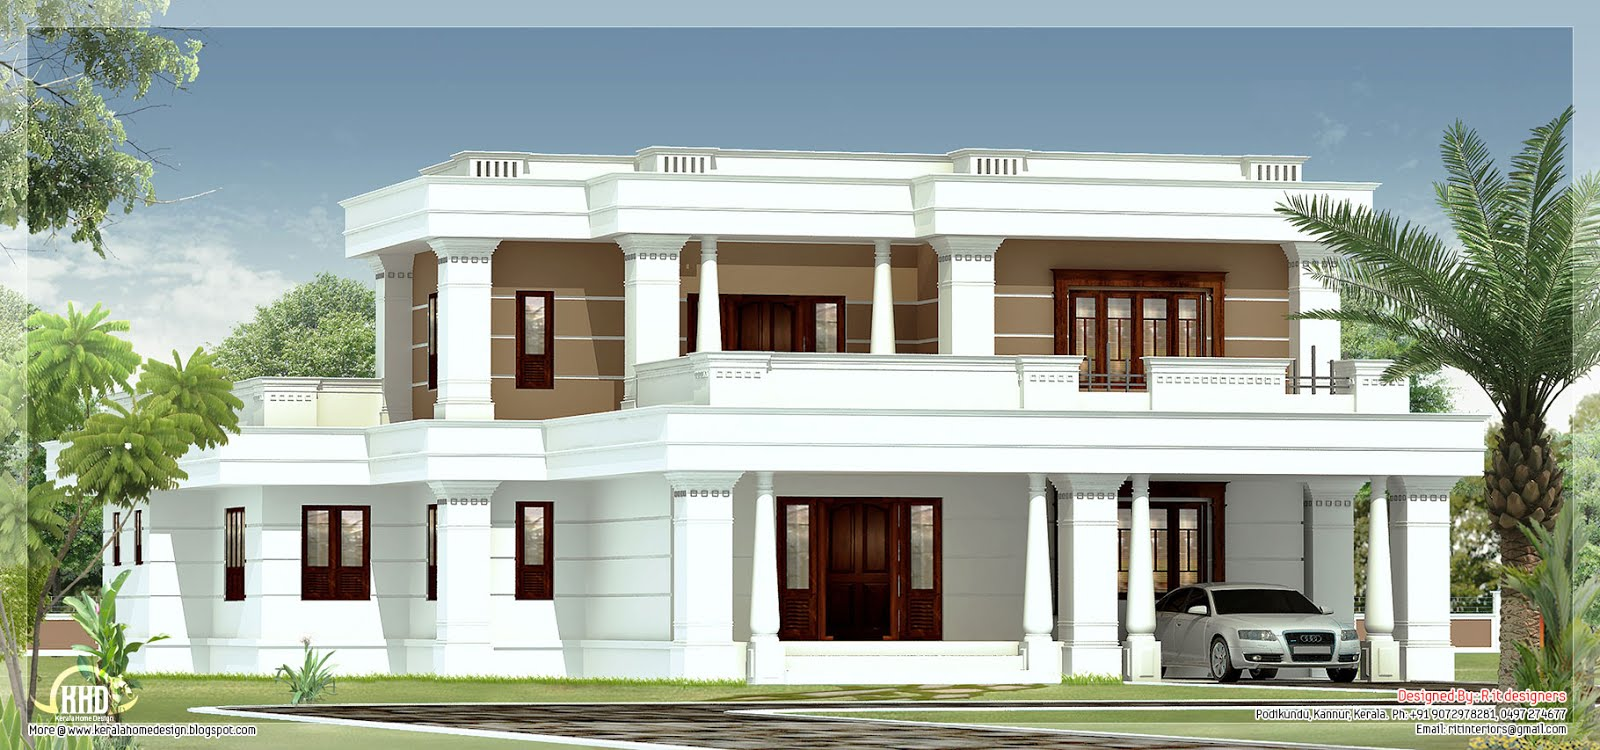 4 bedroom flat roof villa kerala home design and floor plans for Home designs 4 you